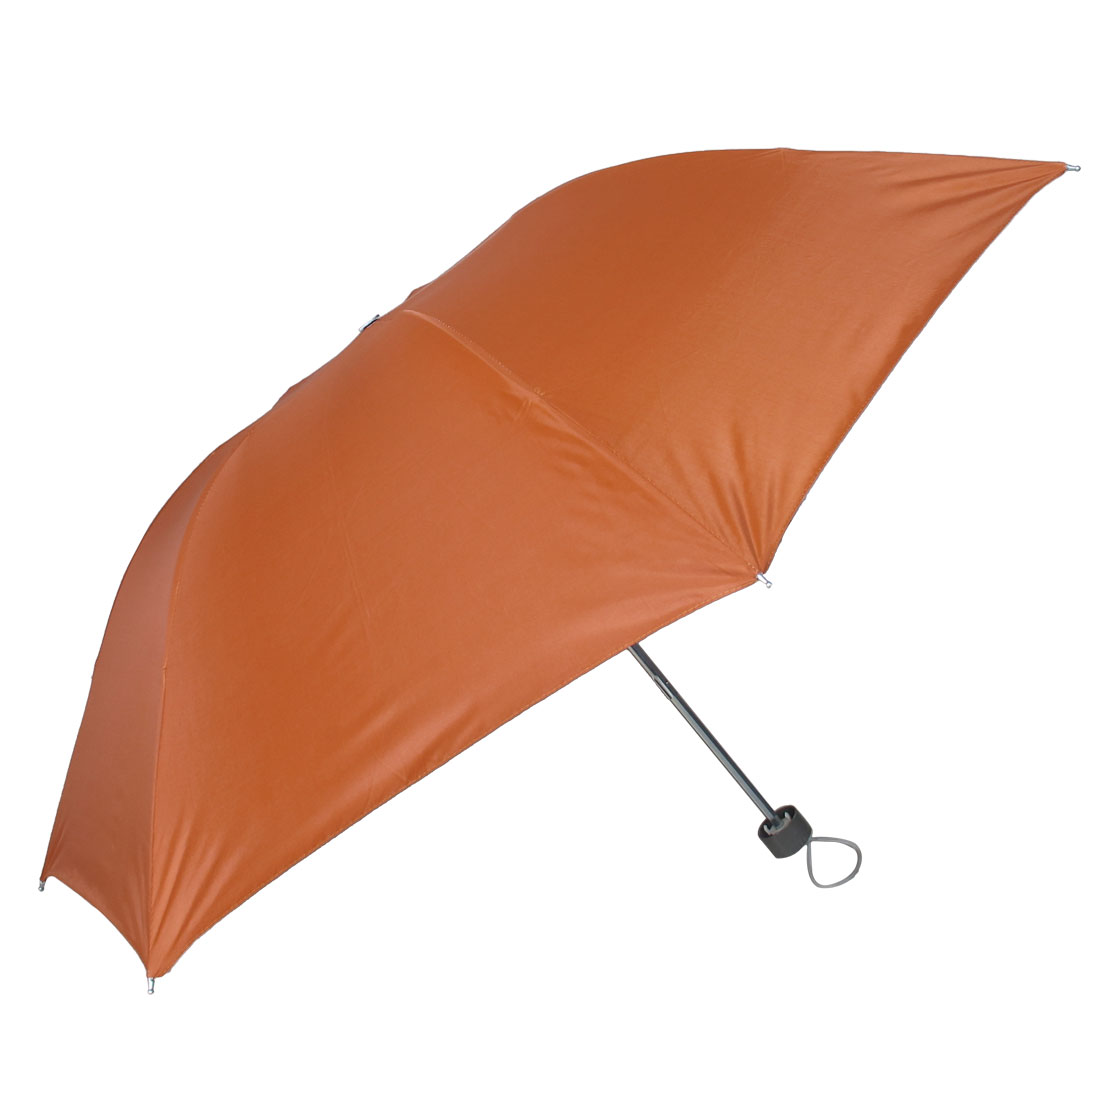 Plastic Handle Water Resistant Fabric Foldable Shaft Orange Rain Umbrella